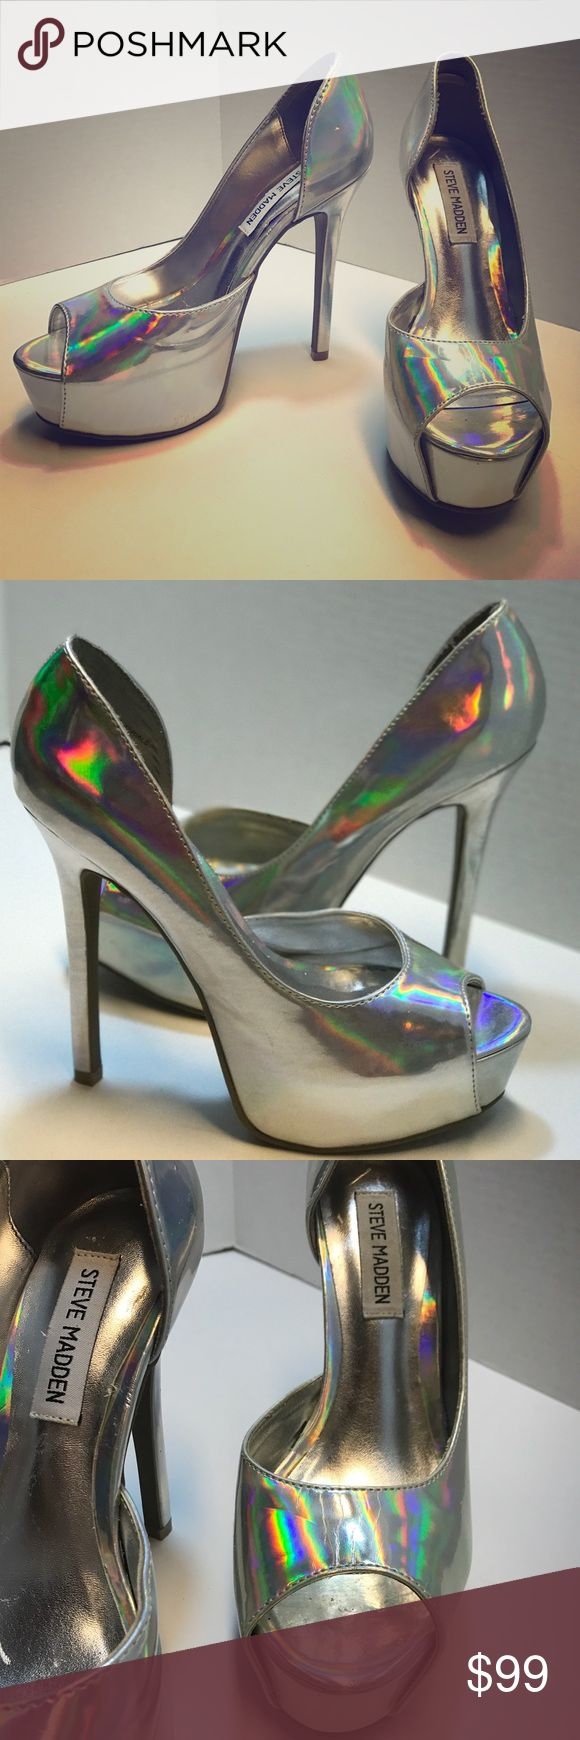 Steve Madden Holographic Open Toe Pumps Steve Madden Platform Holographic Open Toe Pumps! Store display bought as is. There is some minors marks on the outside, but not very noticeable because of the holographic material. Never been worn outside of store, only been tried on and used for display in store. Wonderful for photo shoots or special events!!! Super cute! Steve Madden Shoes Heels